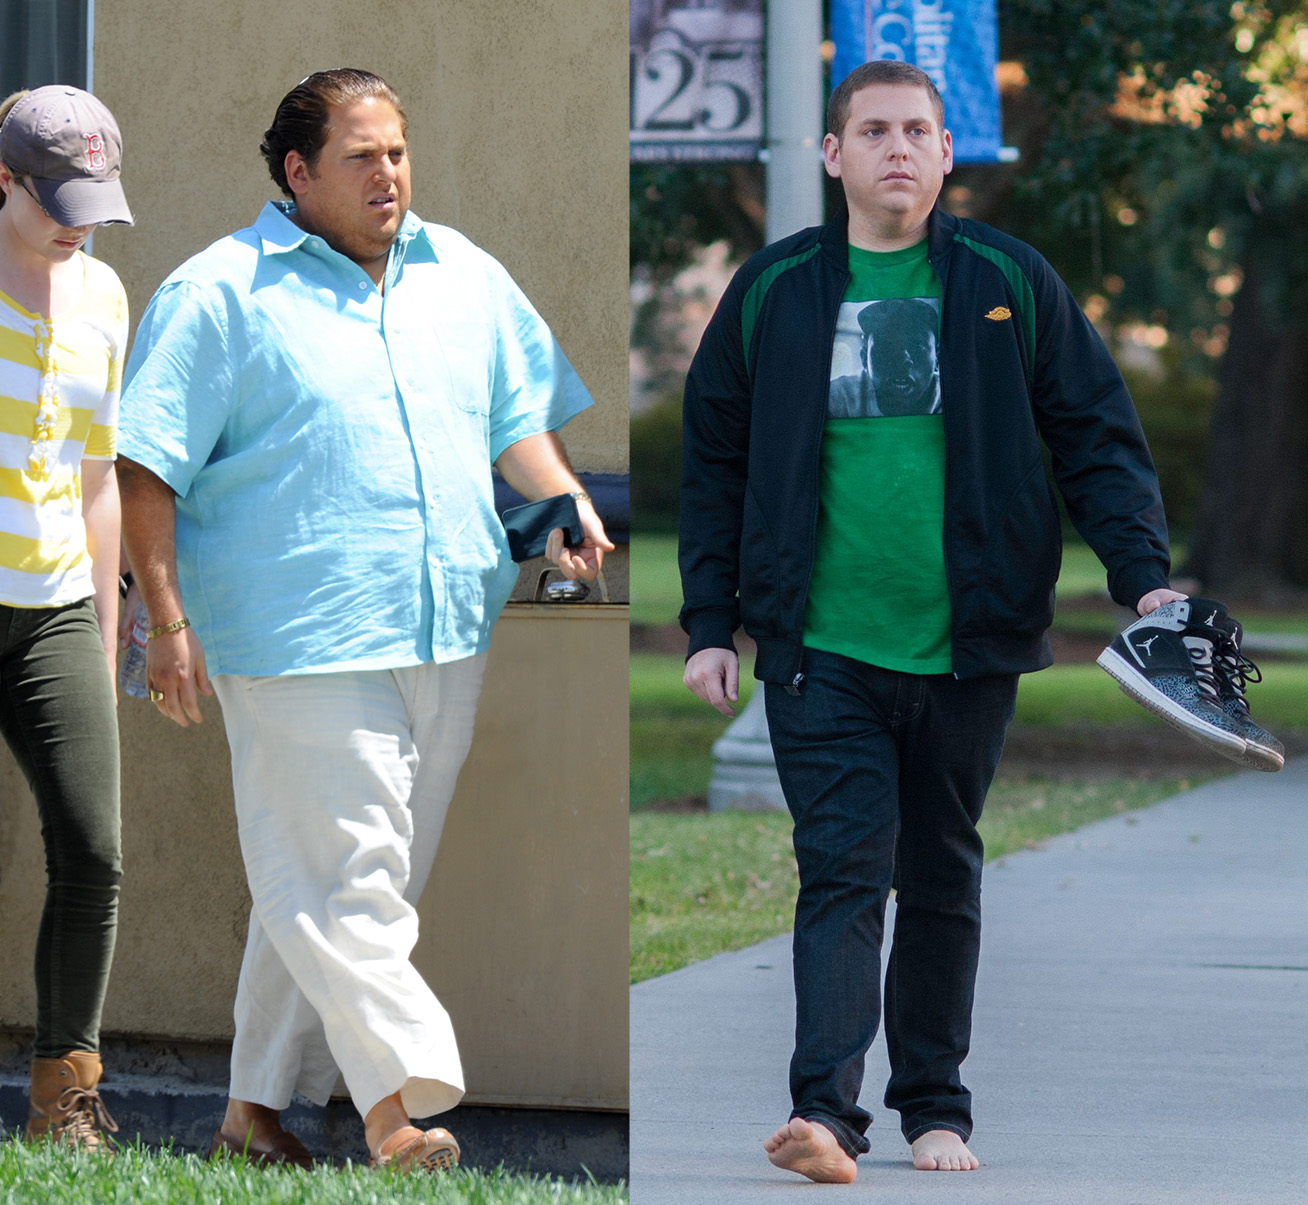 Wolf Of Wall Street's Jonah Hill looks completely different for new movie role